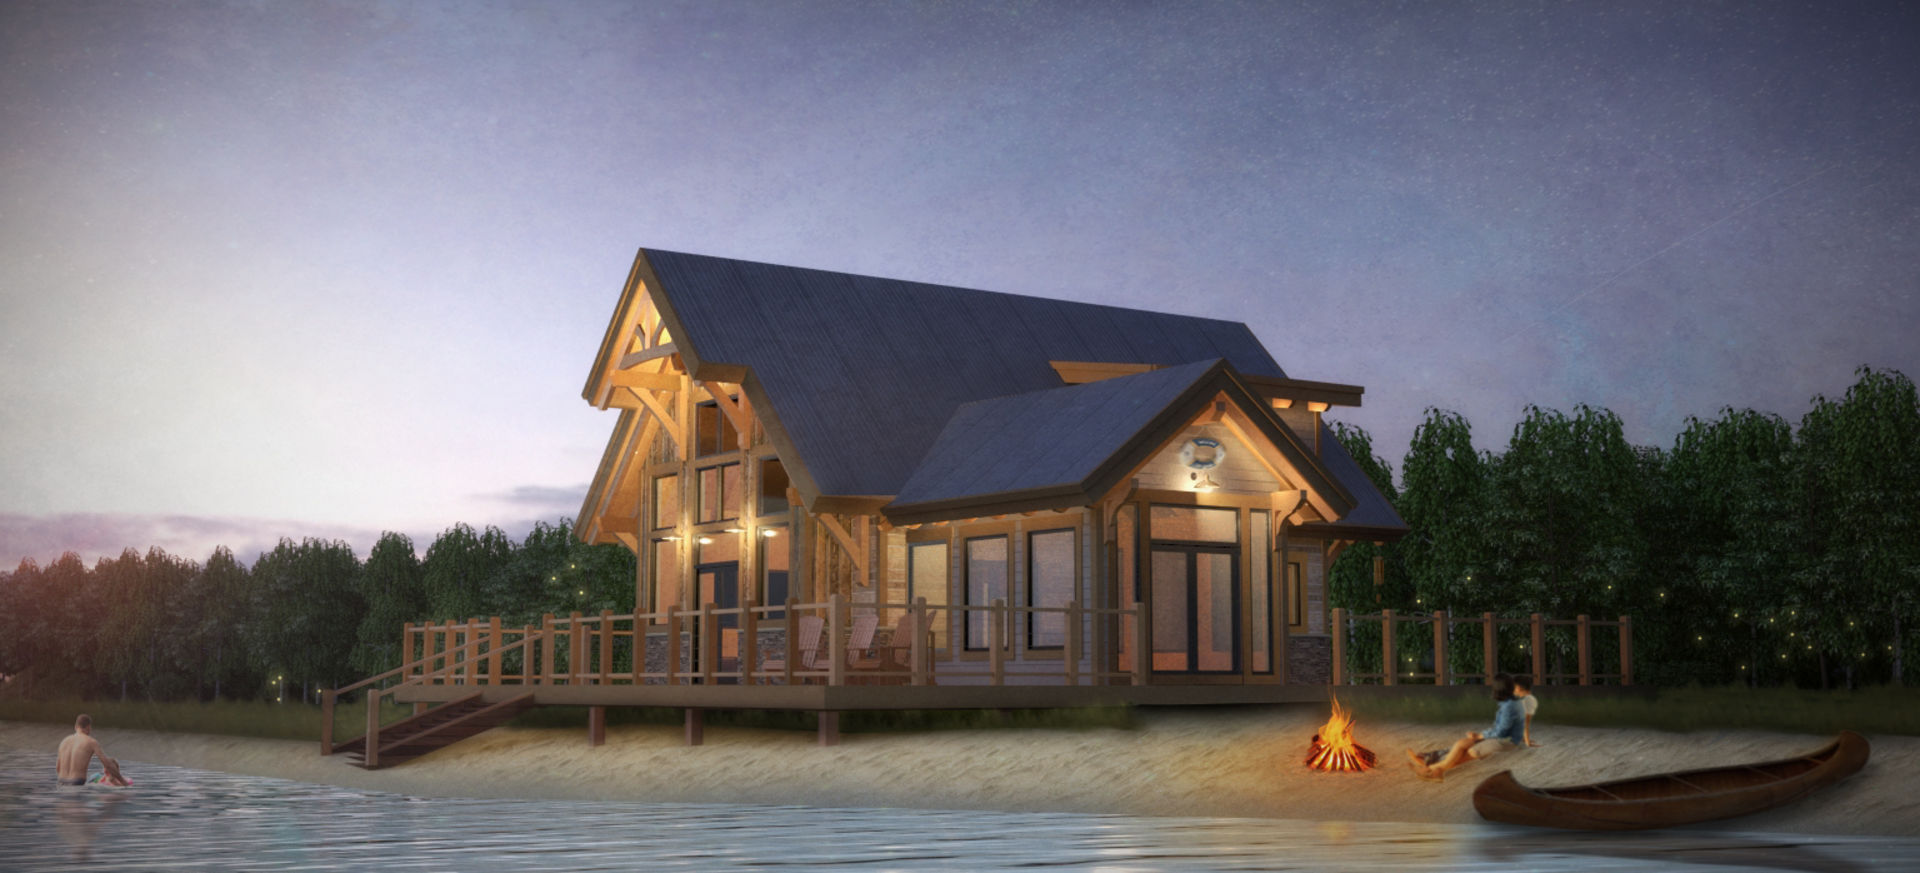 Sweetwater Cabin Timber Frame Design